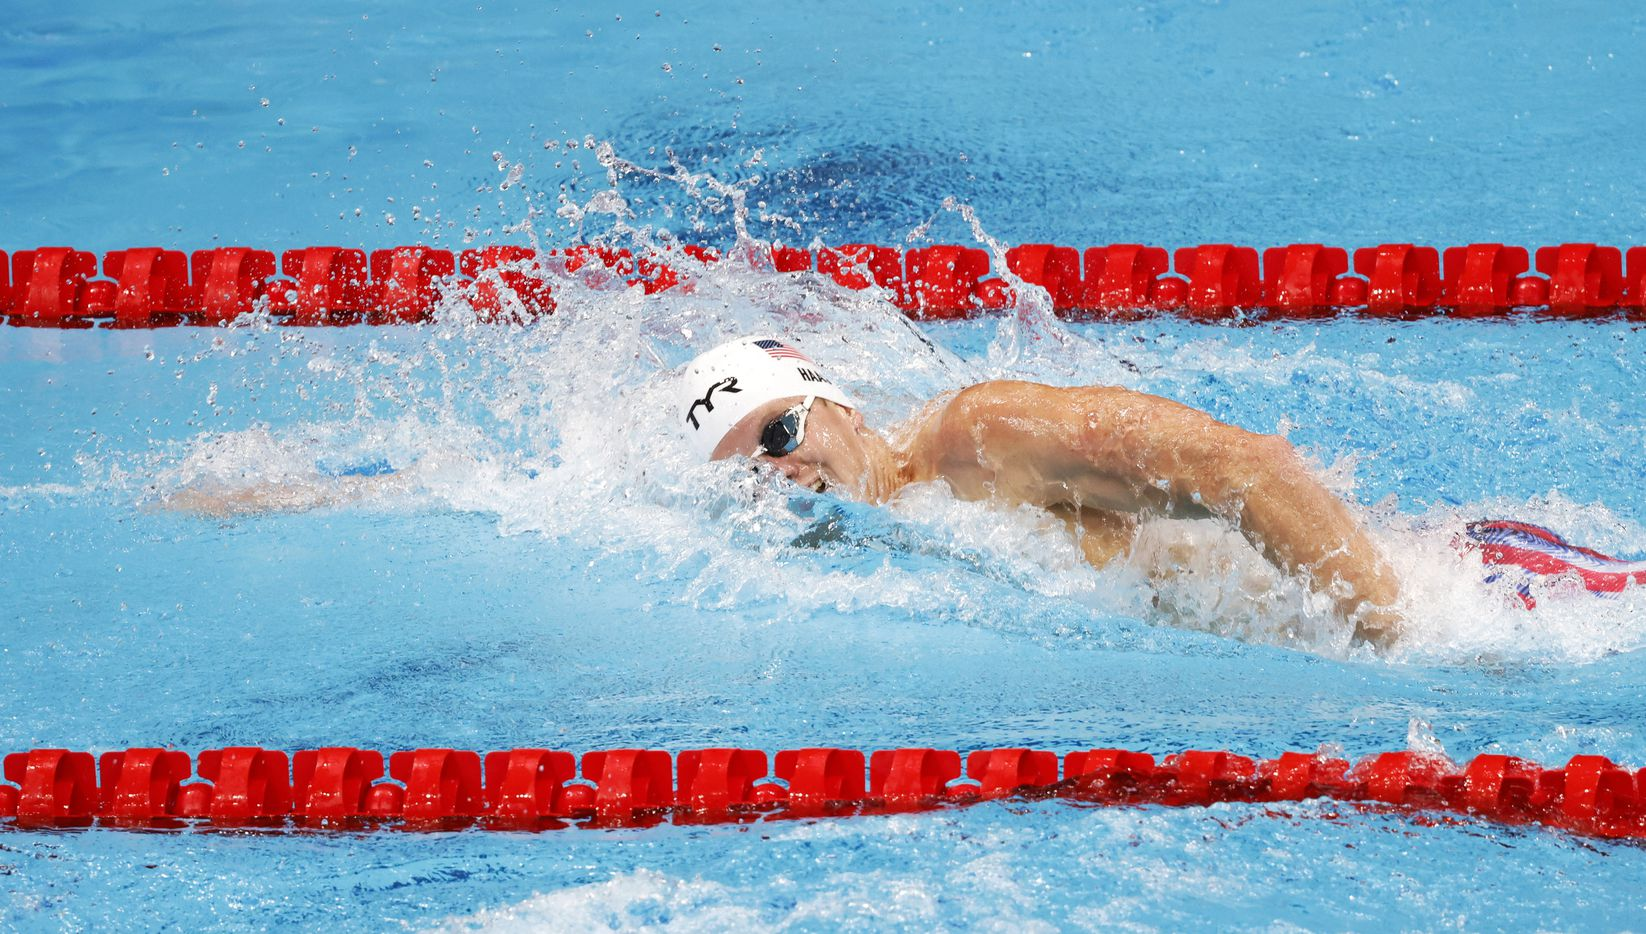 USA's Townley Haas competes in the men's 200 meter freestyle at a swim qualifying event during the postponed 2020 Tokyo Olympics at Tokyo Aquatics Centre on Sunday, July 25, 2021, in Tokyo, Japan. Haas finished with a time of 1:45.86. (Vernon Bryant/The Dallas Morning News)